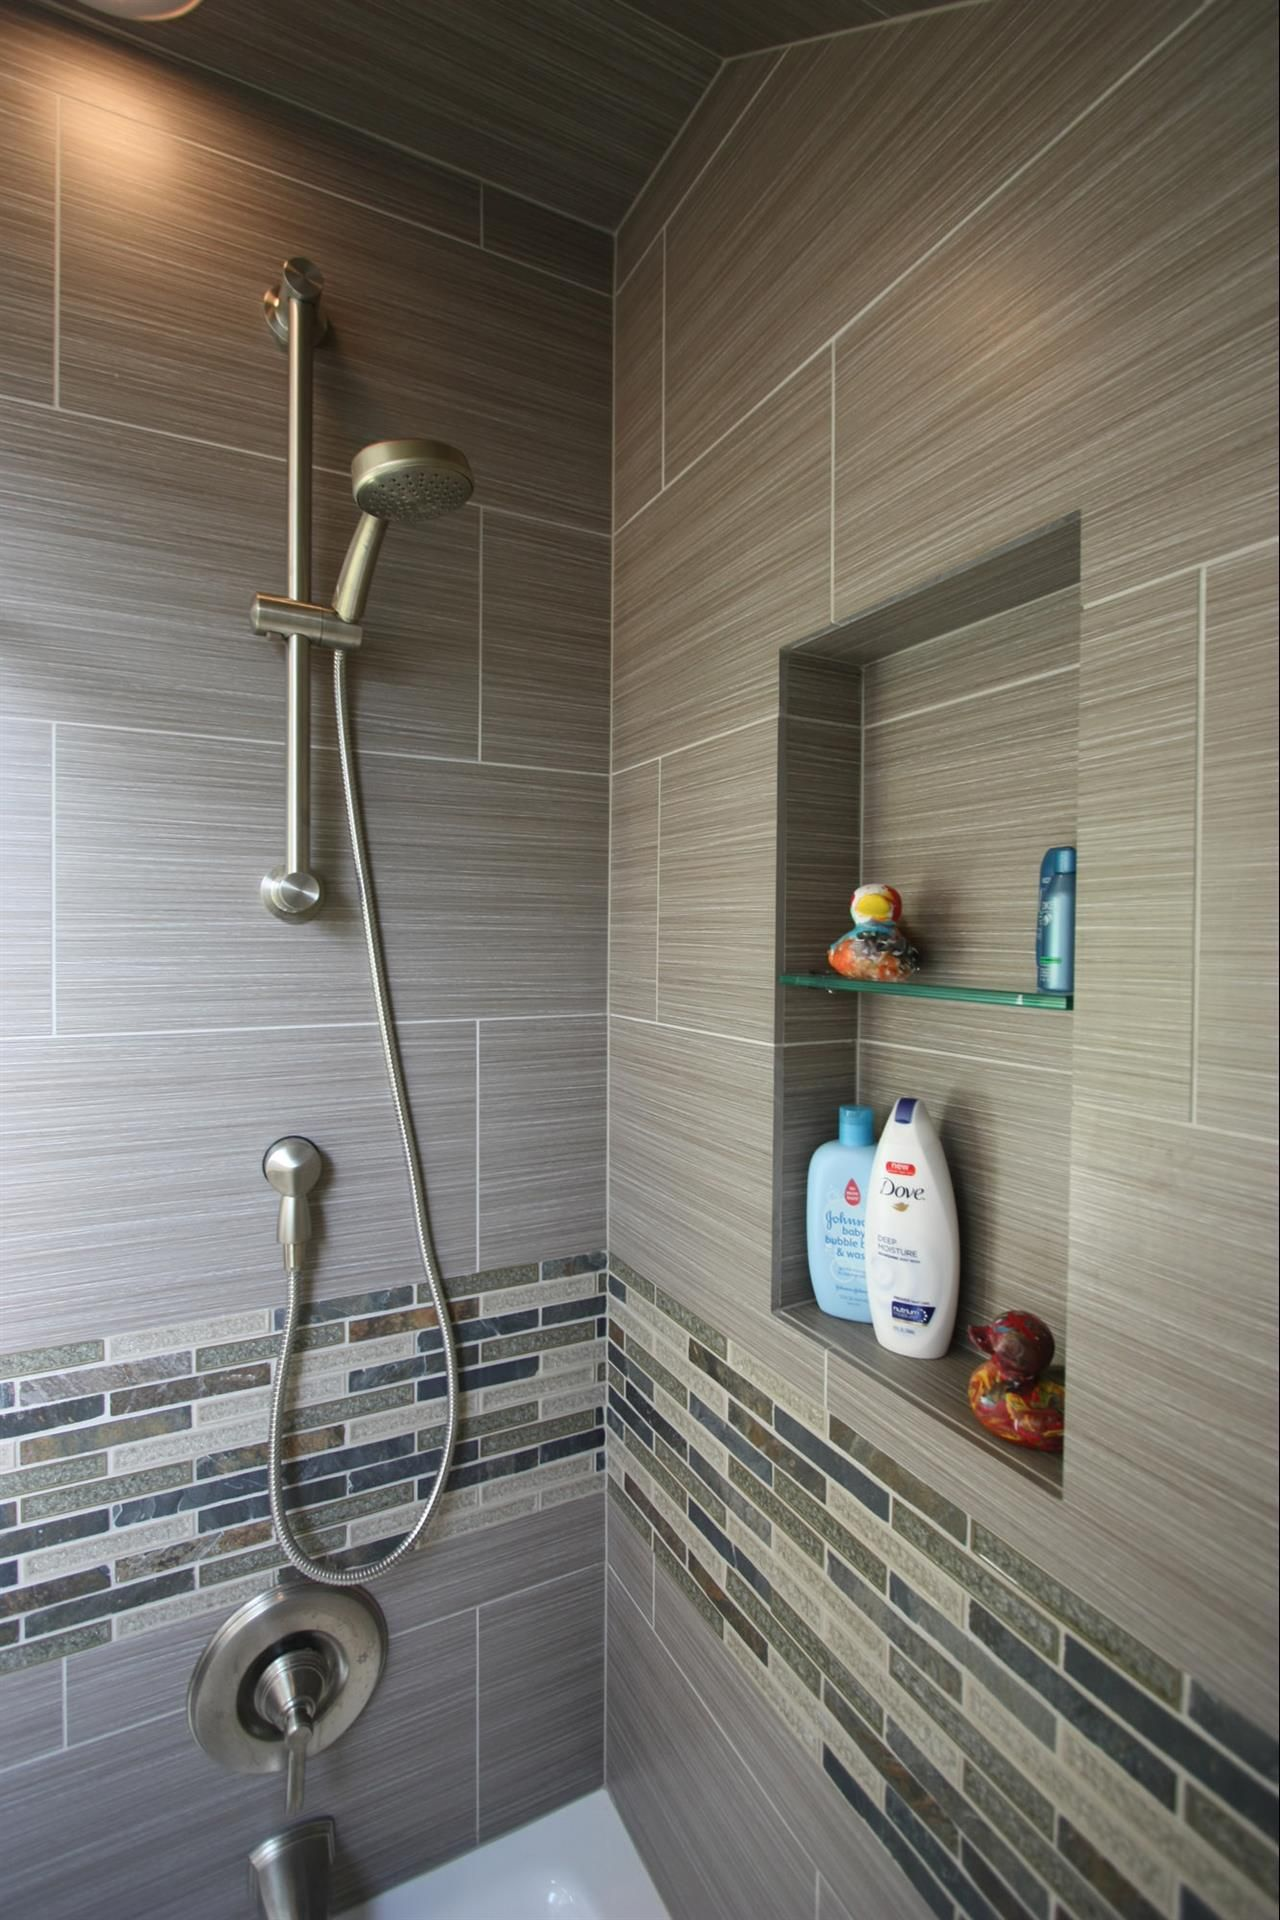 love the color of these tiles httpwalkinshowersorgbest bathroom tile design ideasmodern - Walk In Shower Tile Design Ideas